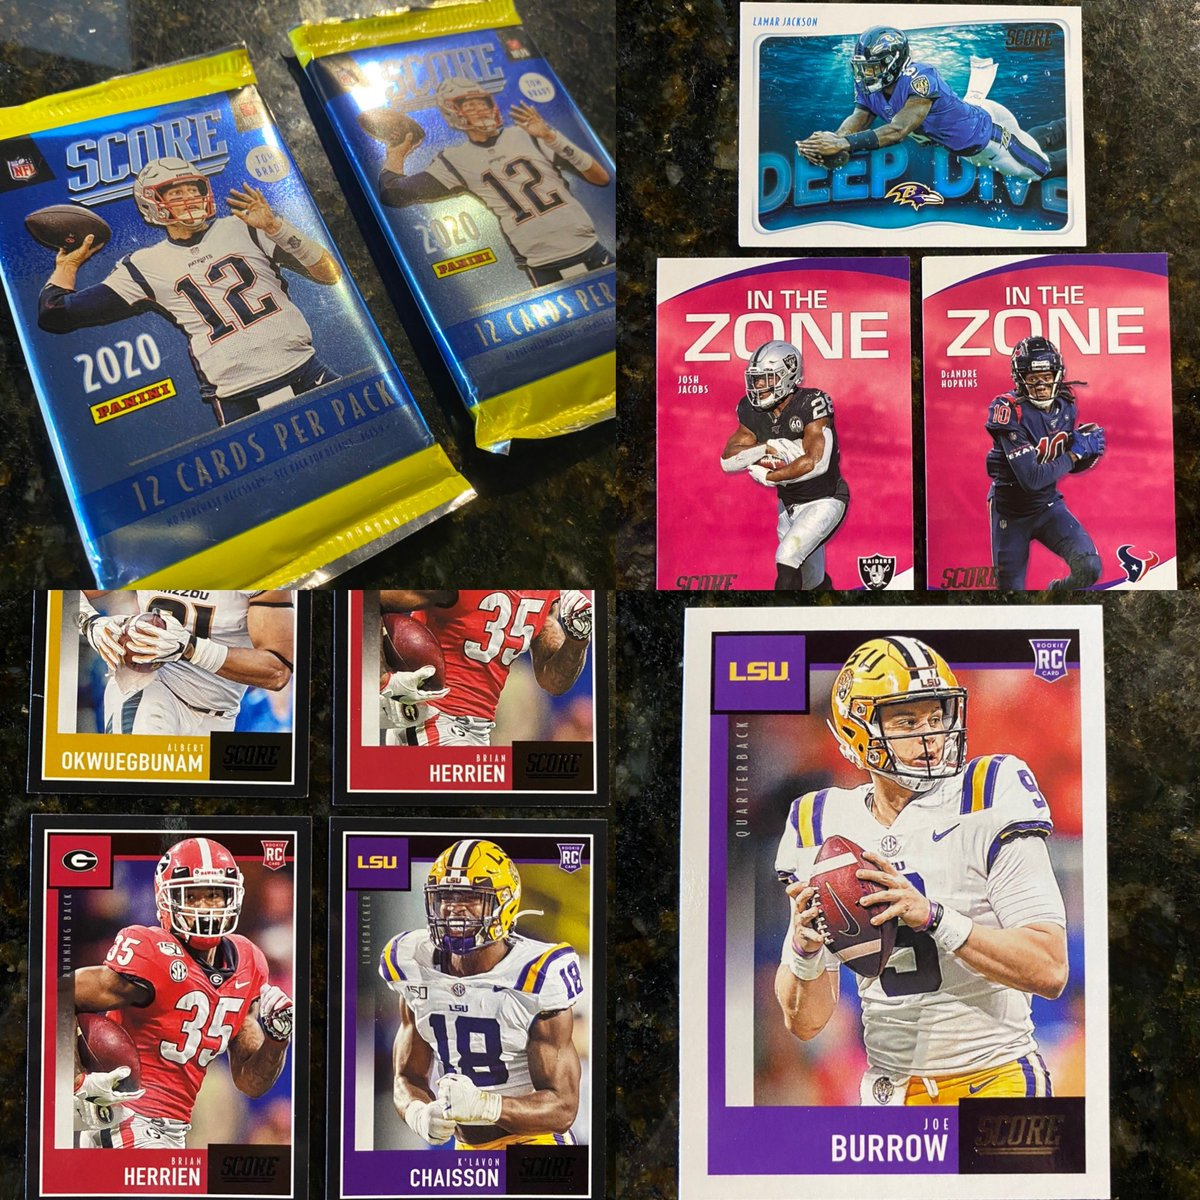 VERY confident they've been felt up and weighed, but packs are shiny! Screw it - Lets grab 2! #WhoDoYouCollect #nfl #TheHobby #Cards #Collecting #SportsCards  #football #2020score #score #scorefootball #footballcards #2020nfl #joeburrow #rookiecard #rookiecards #lamarjackson https://t.co/pmeG6MVtnF